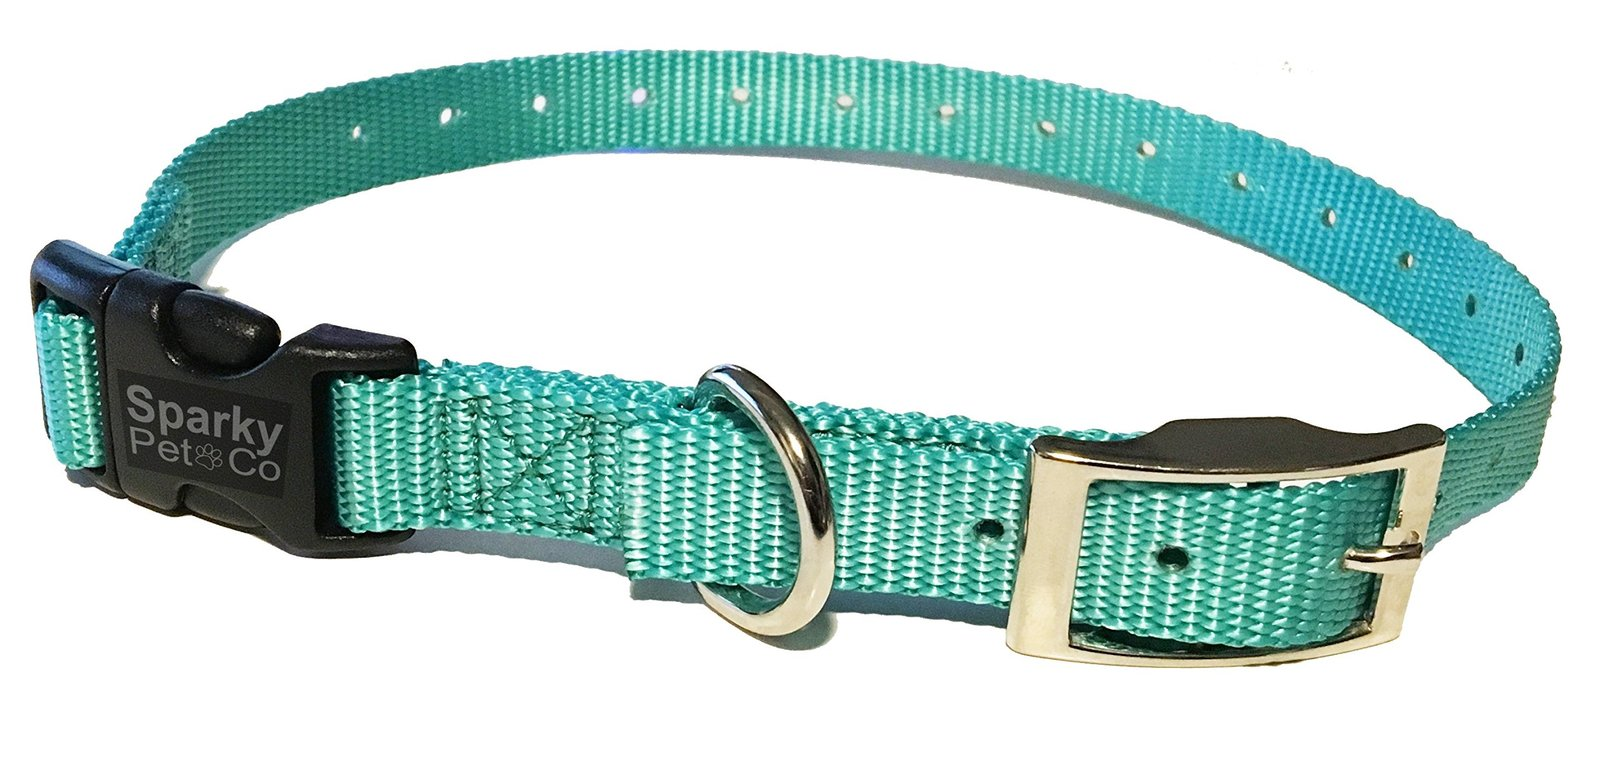 "Sparky PetCo Educator Compatible 3/4"" Nylon Double Buckle Quick Snap Replacem..."